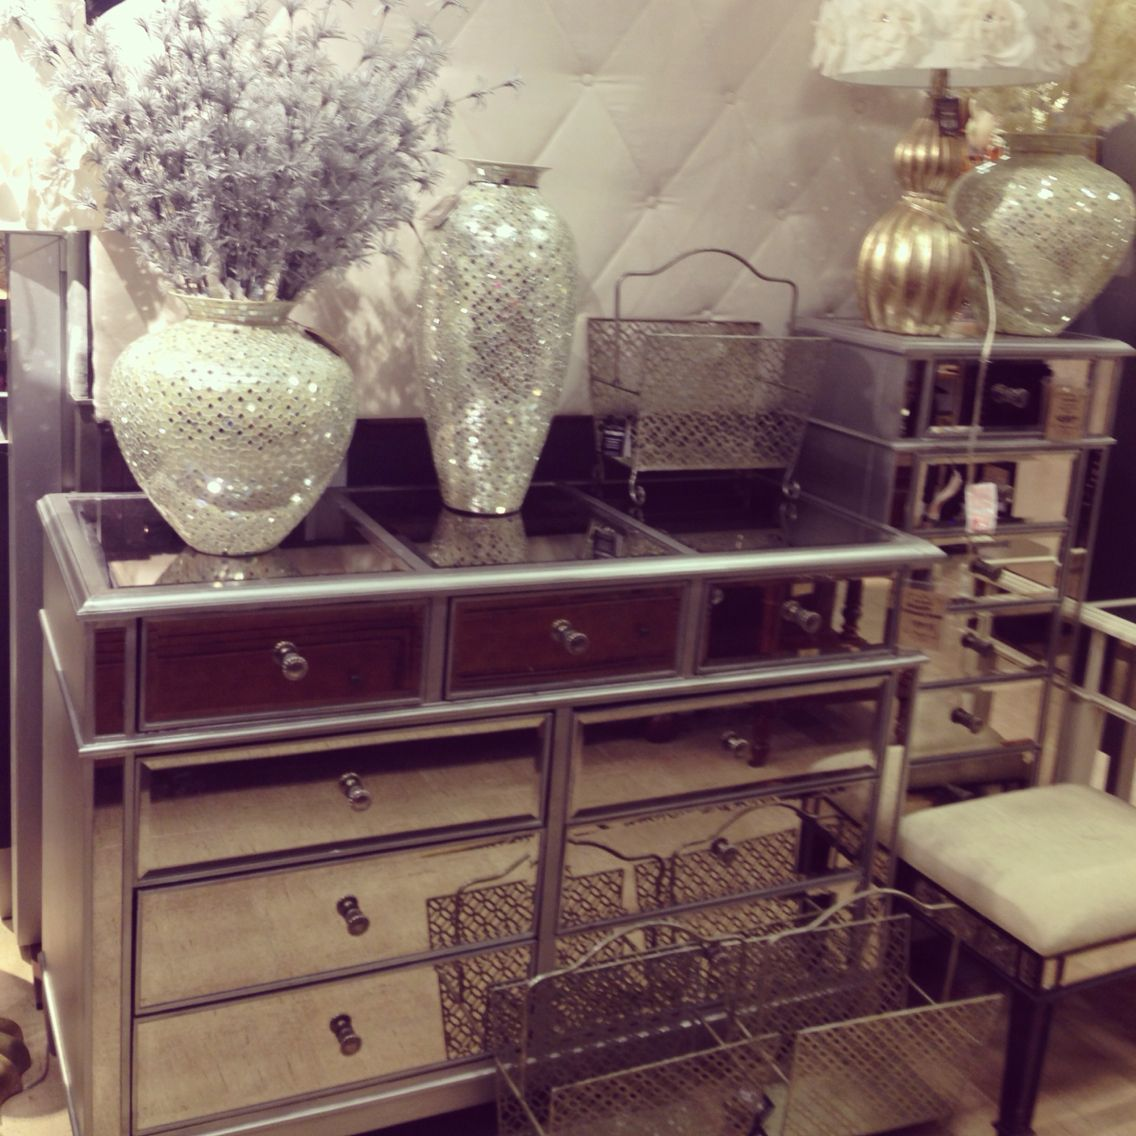 hayworth collection mirrored furniture. Hayworth Bedroom Collection Mirrored Furniture E